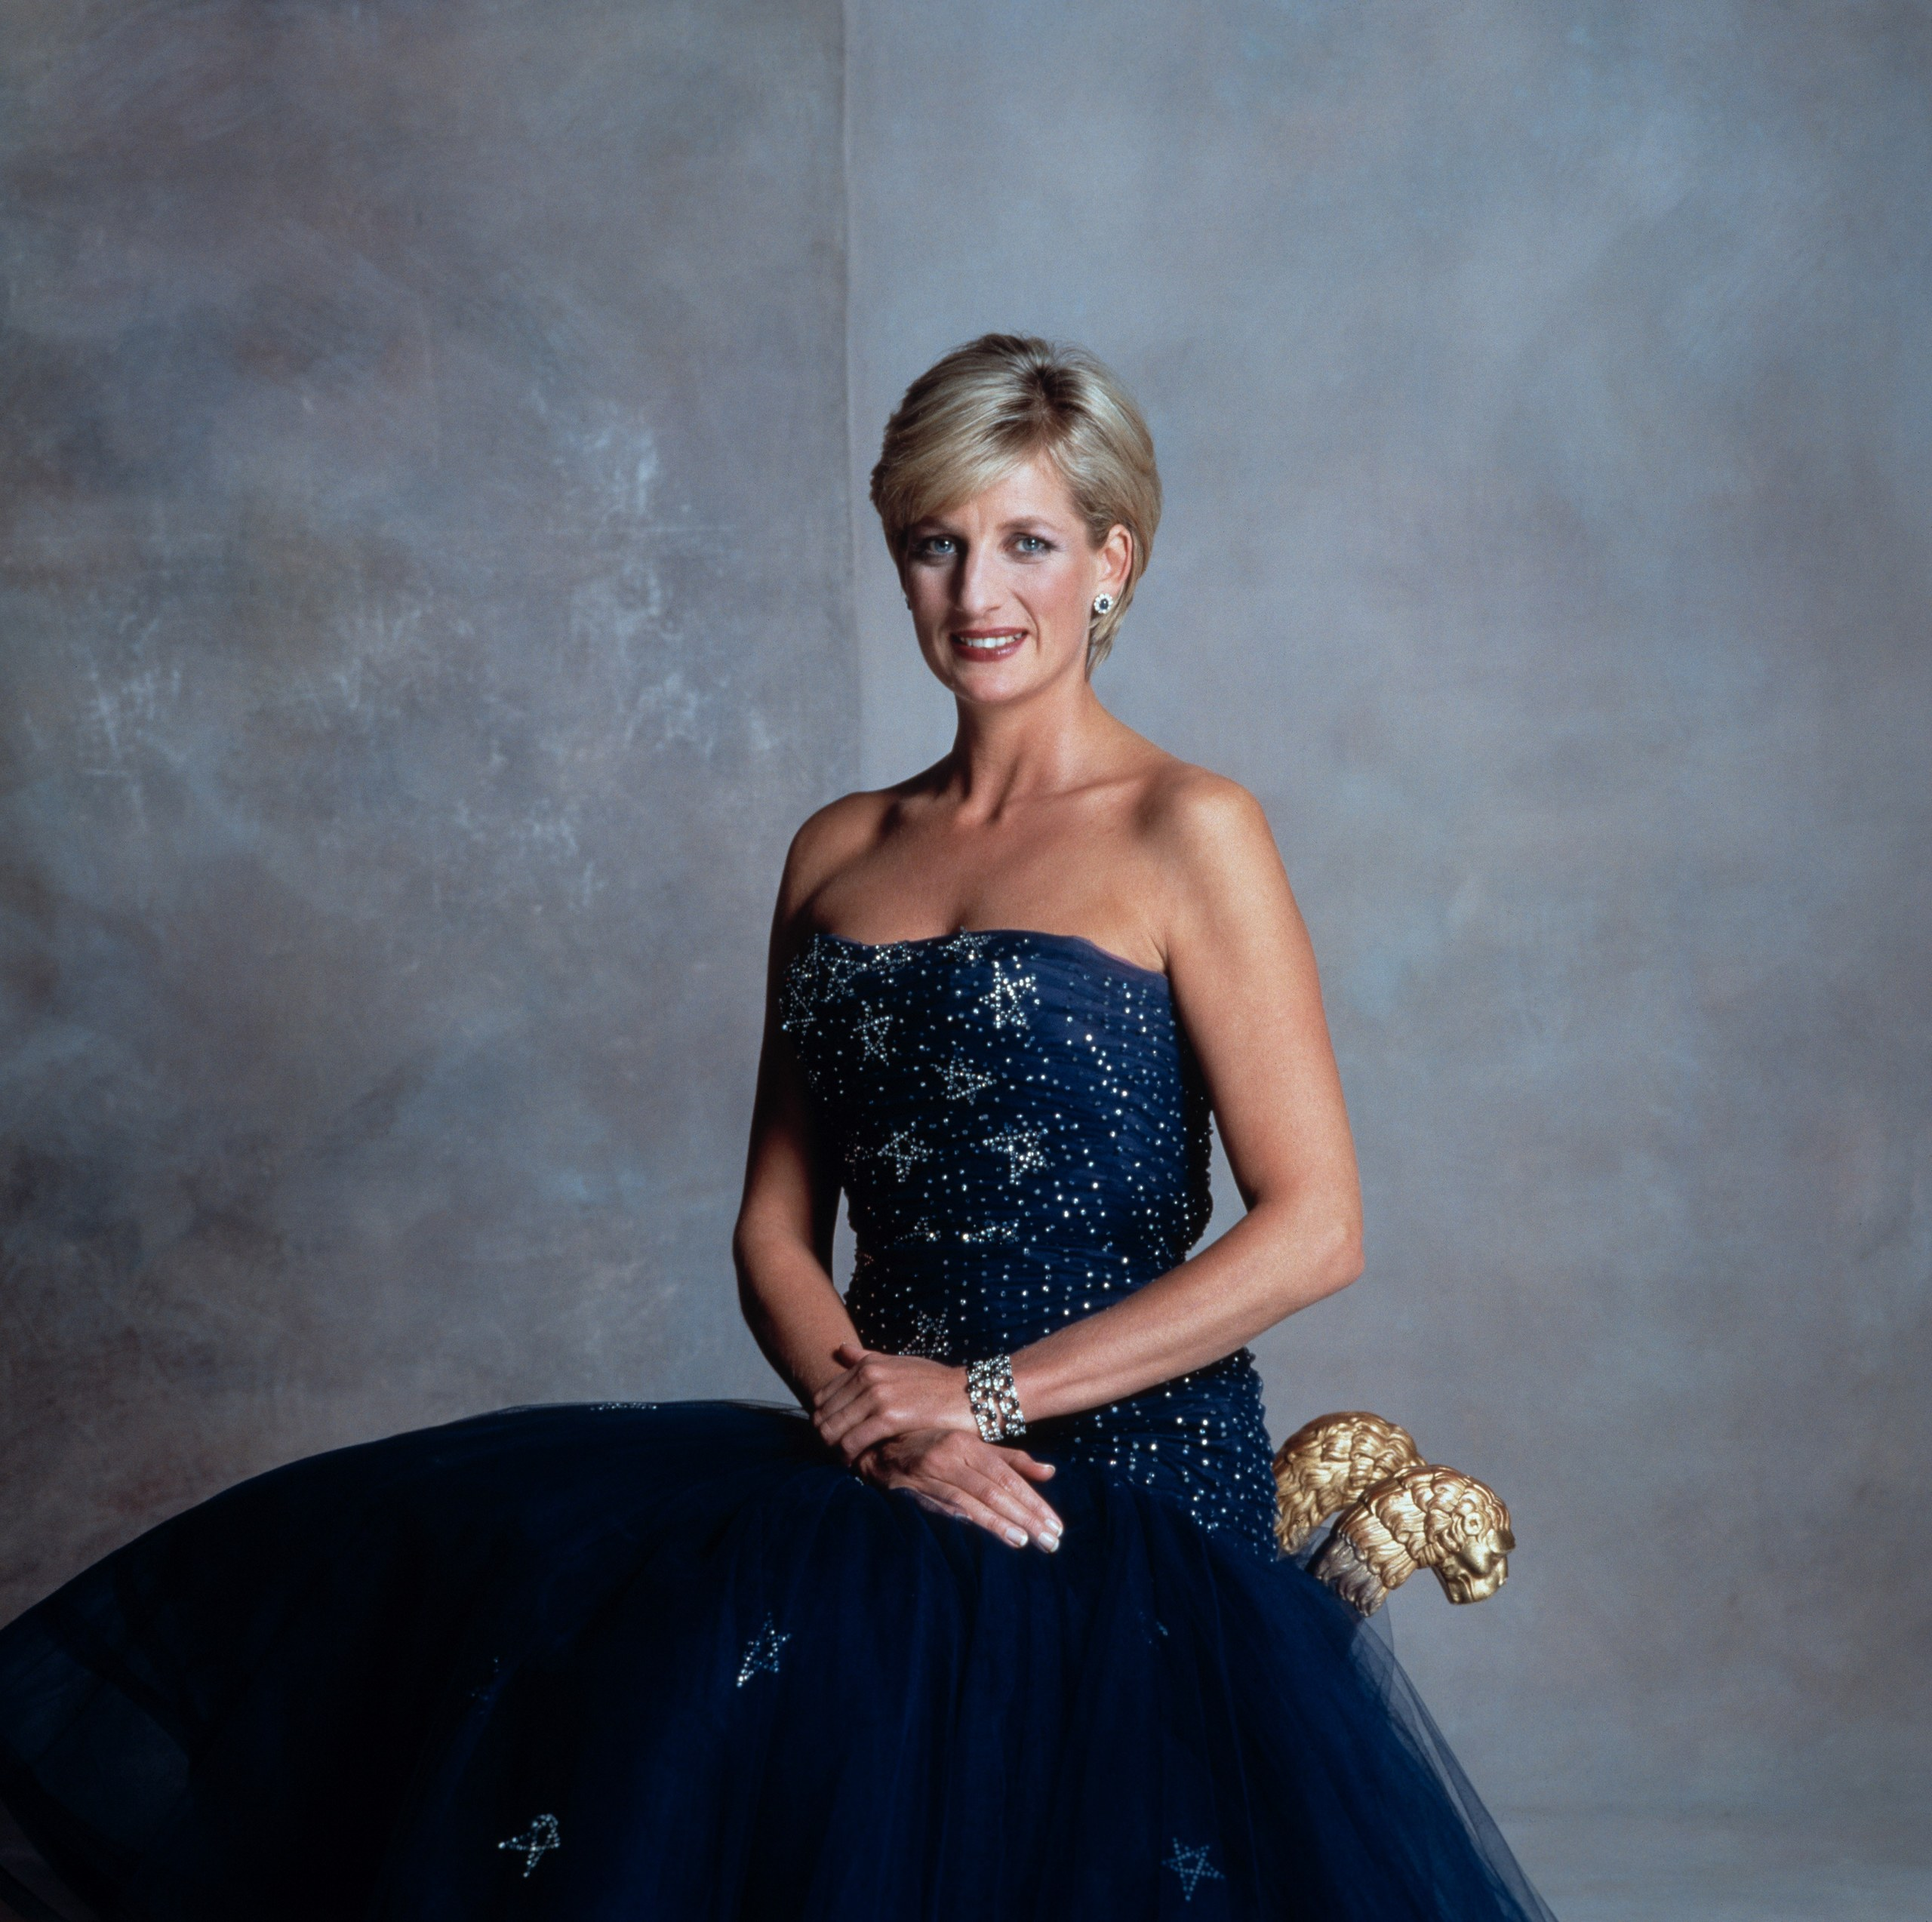 princess diana images diana hd wallpaper and background